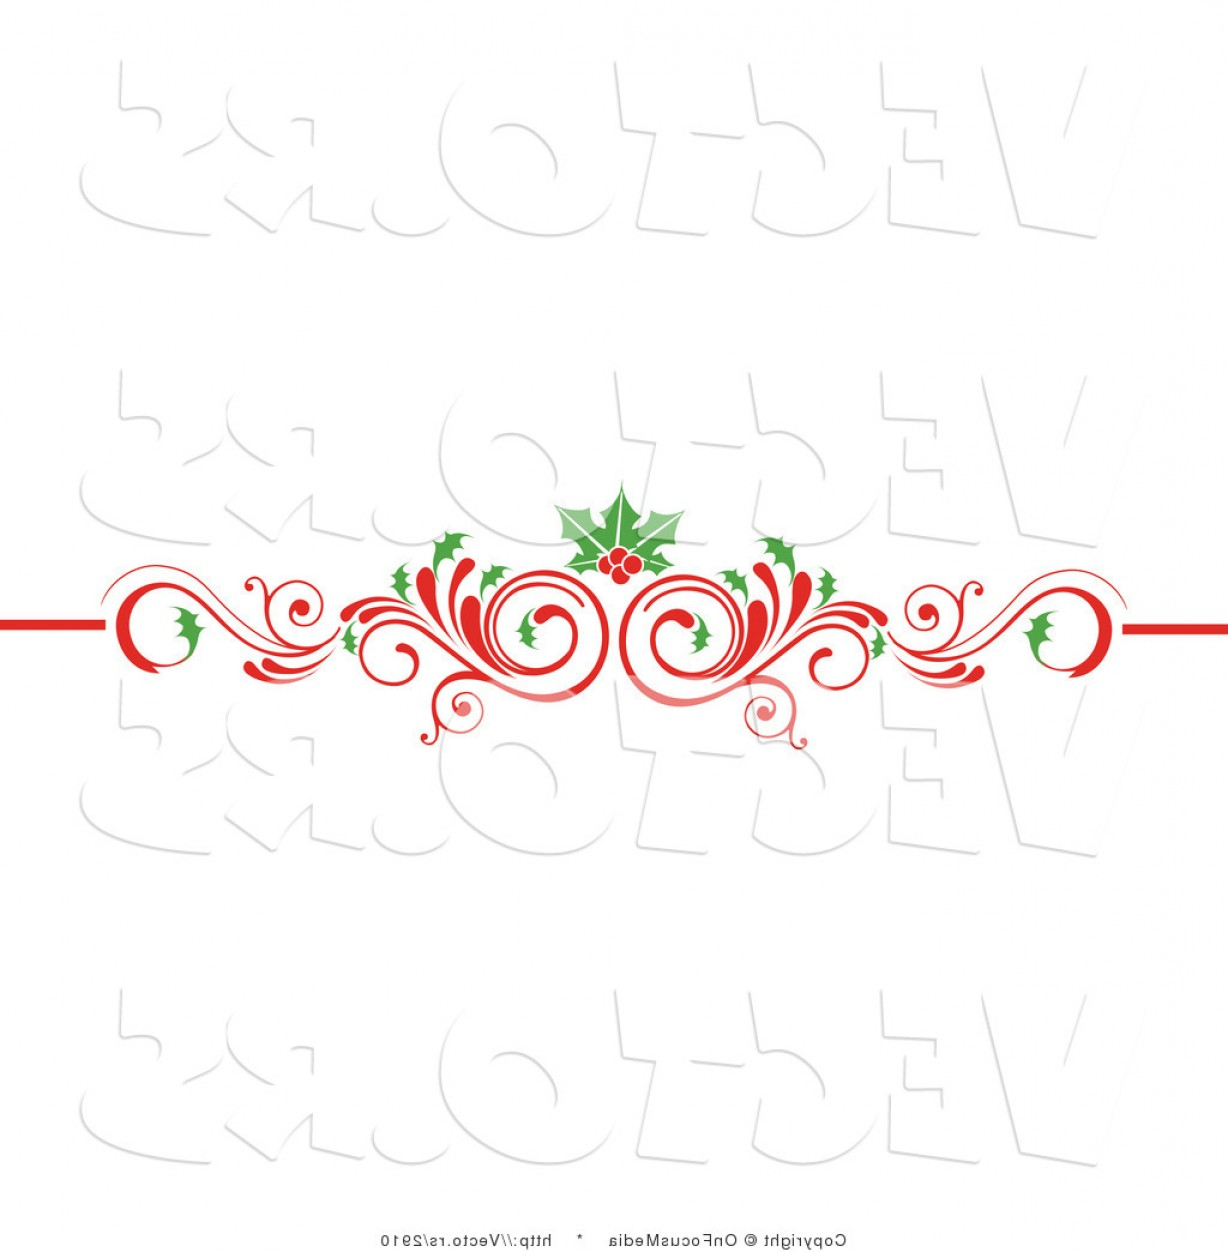 Vector Flourish Christmas: Vector Of Christmas Scrolled Red Flourish Vine With Holly Leaves And Berries By Onfocusmedia